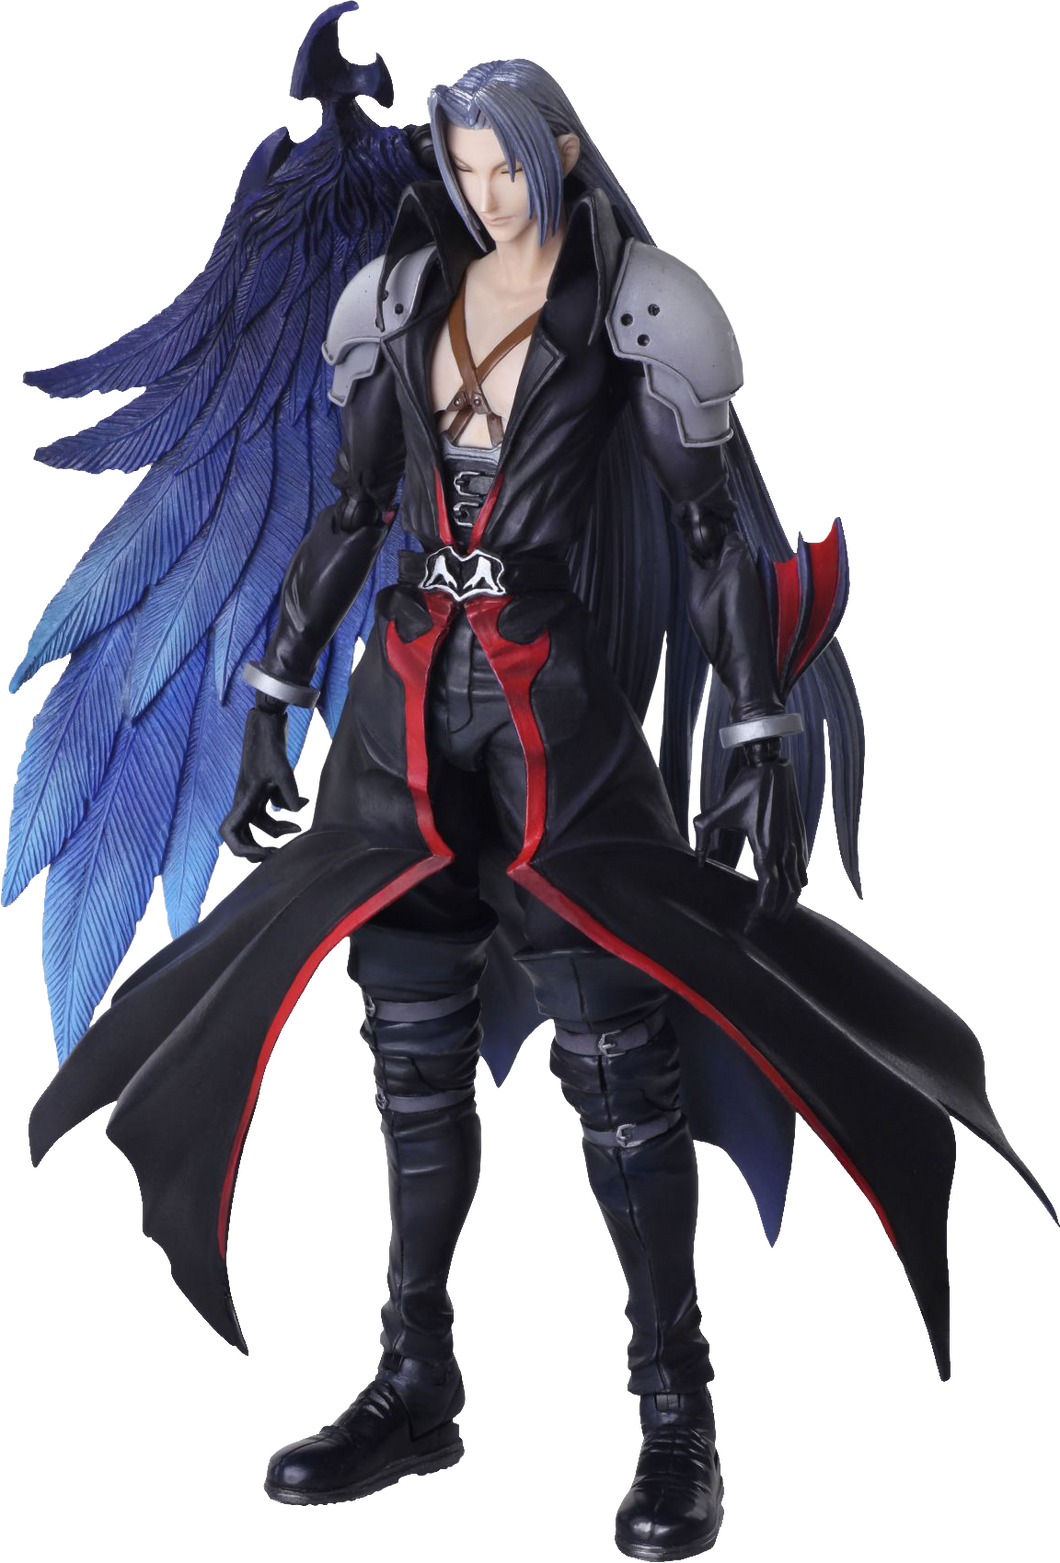 Bring Arts Final Fantasy - Sephiroth Another Form Variant